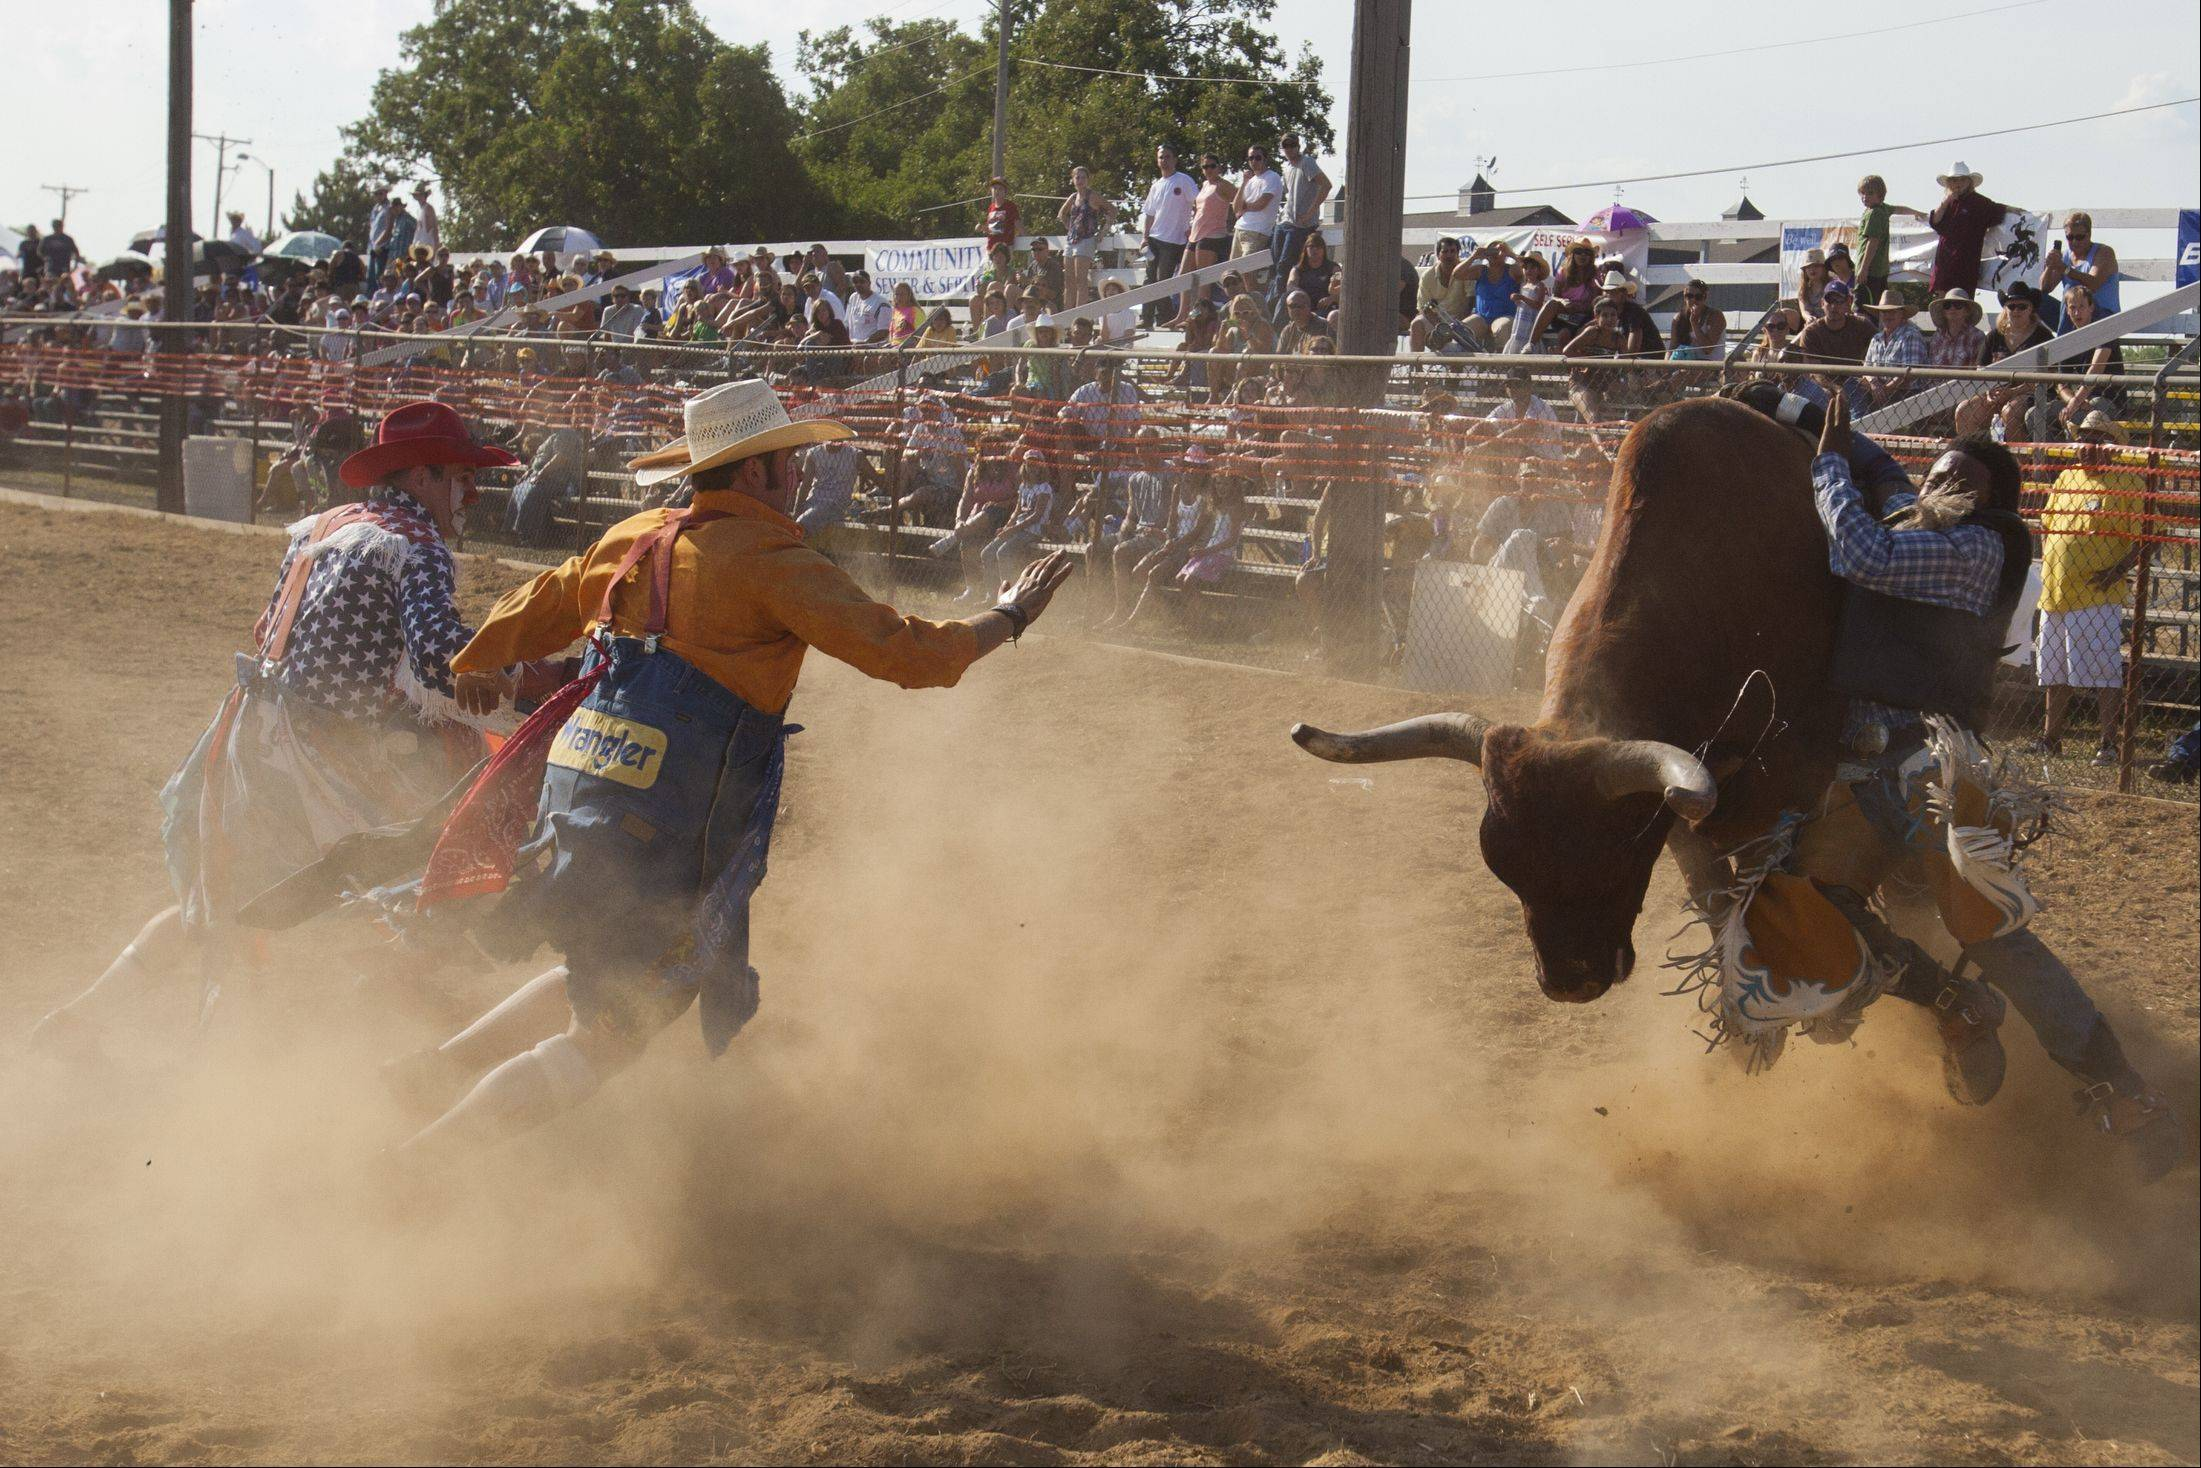 16-year-old Marcel Autman of Kankakee arm gets stuck as he is kicked of the bull, he has been riding since age 12 during the 49th IPRA Championship Rodeo at Golden Oaks Rodeo Grounds hosted by the Wauconda Chamber of Commerce.